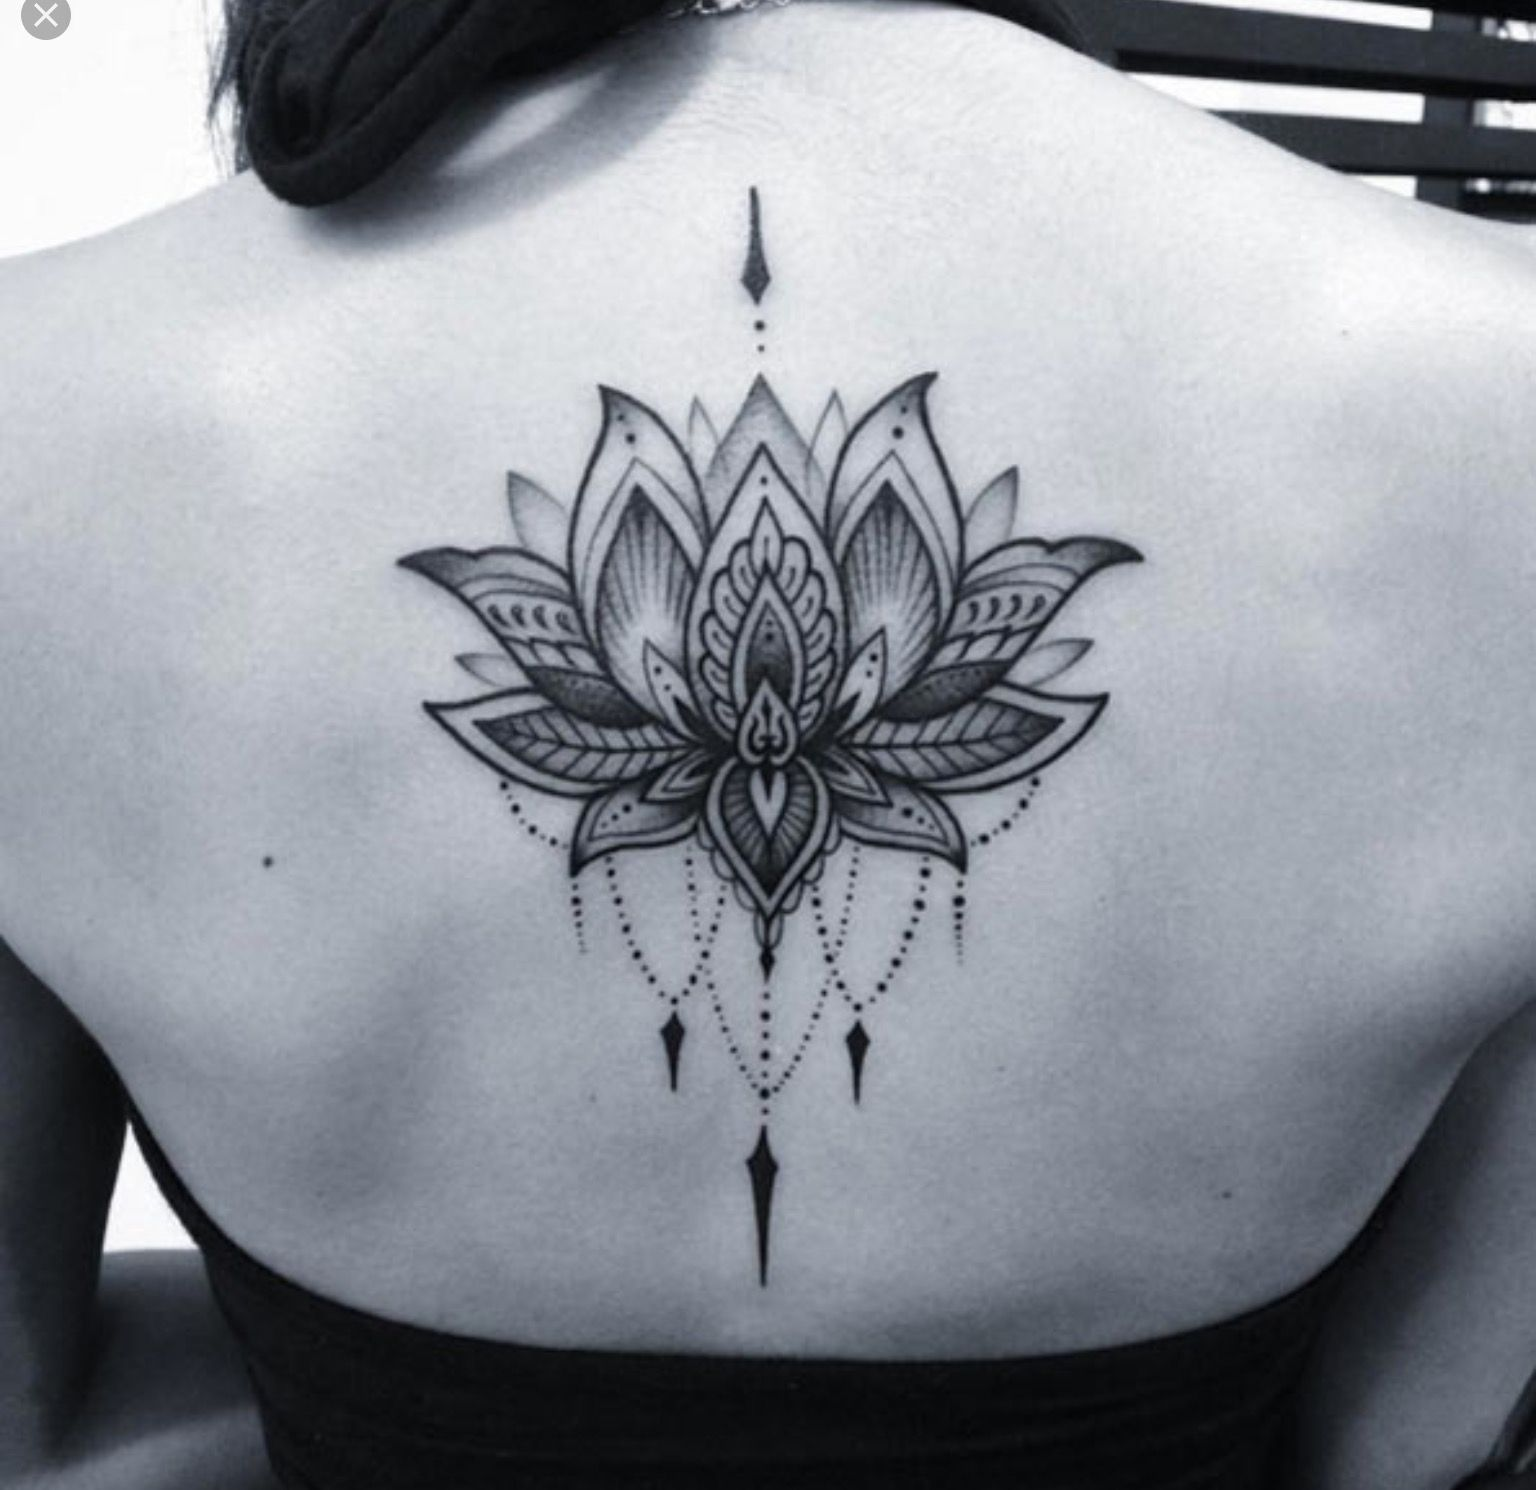 Pin by Hannah on Tats (With images) Tattoos, Flower